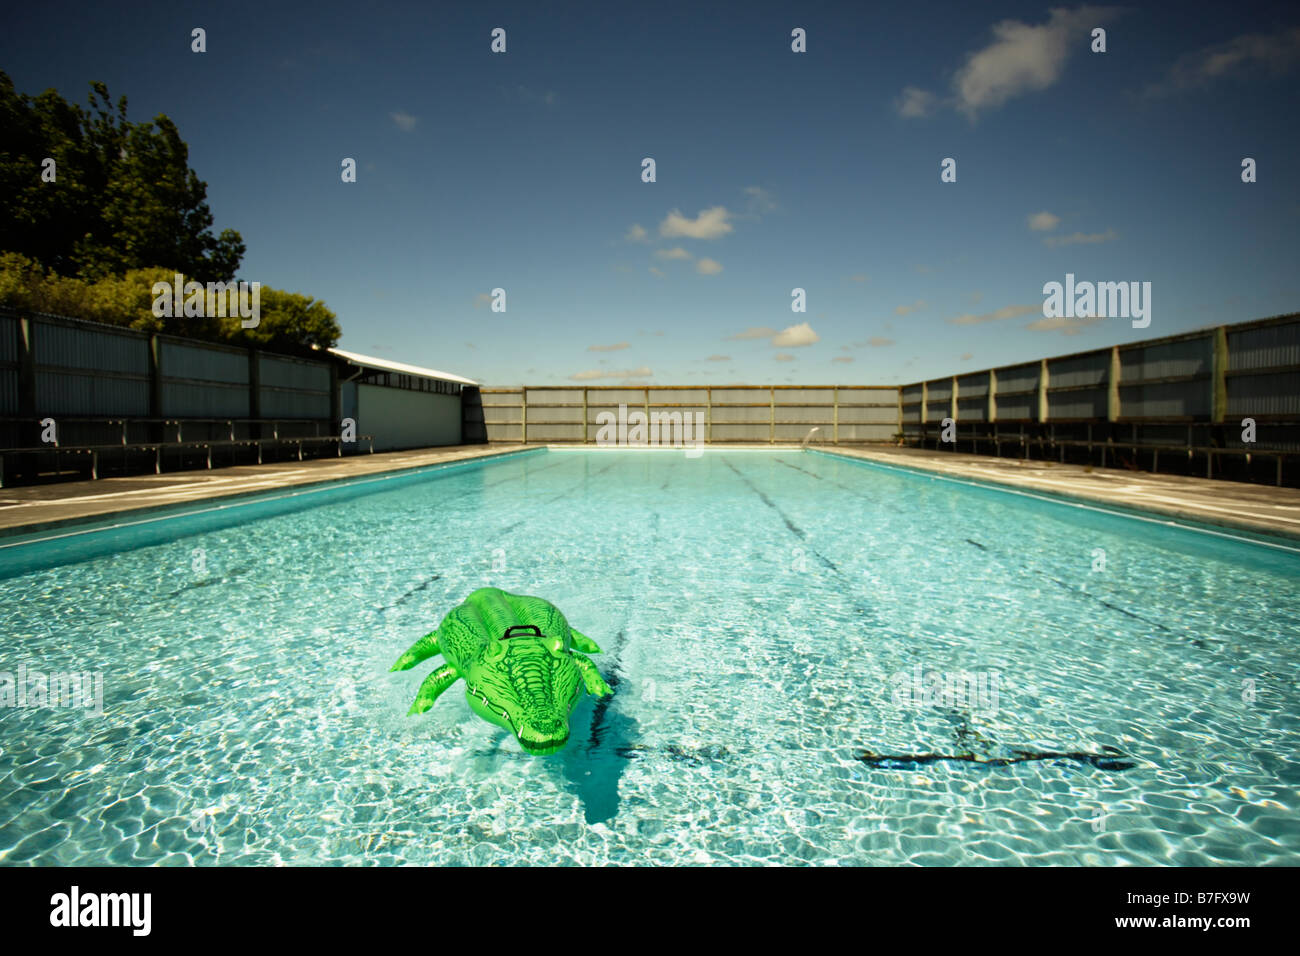 Inflatable Crocodile At Swimming Pool Stock Photo